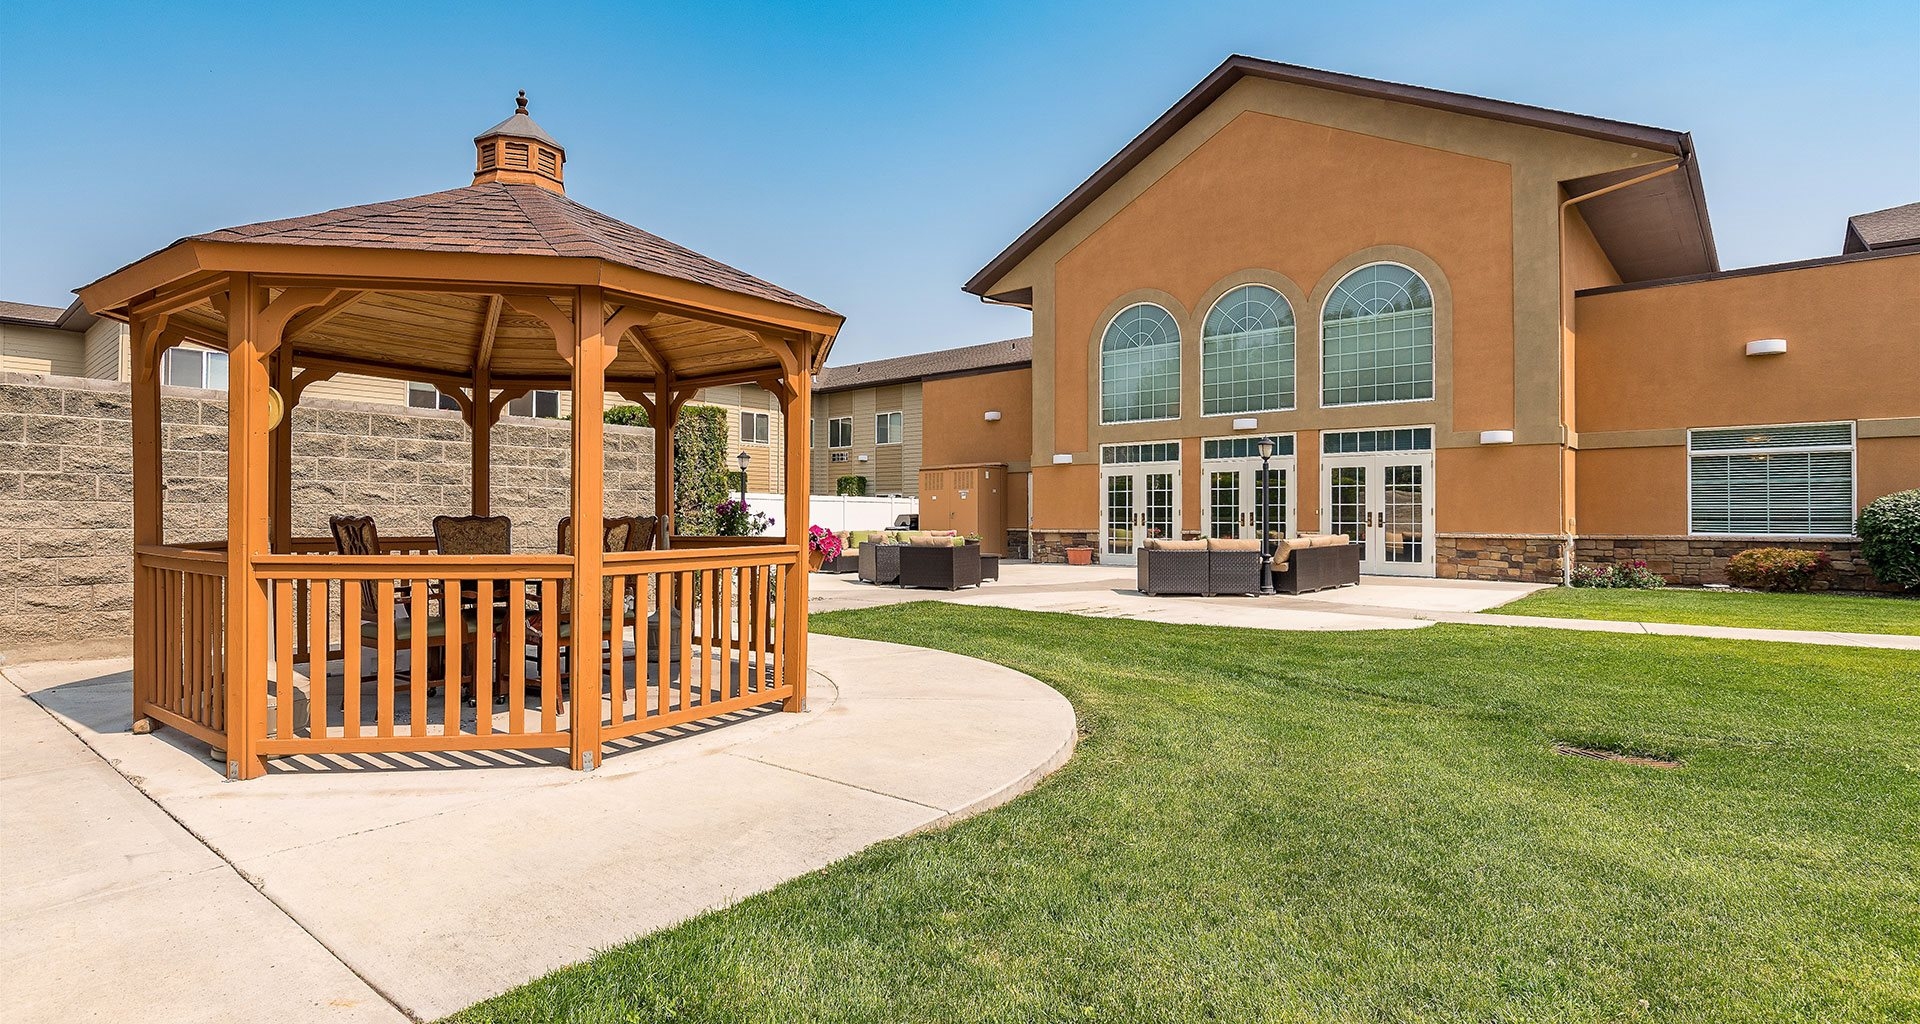 Senior Assisted Living Services In The Heart Of The City at Pacifica Senior Living Ellensburg, Washington